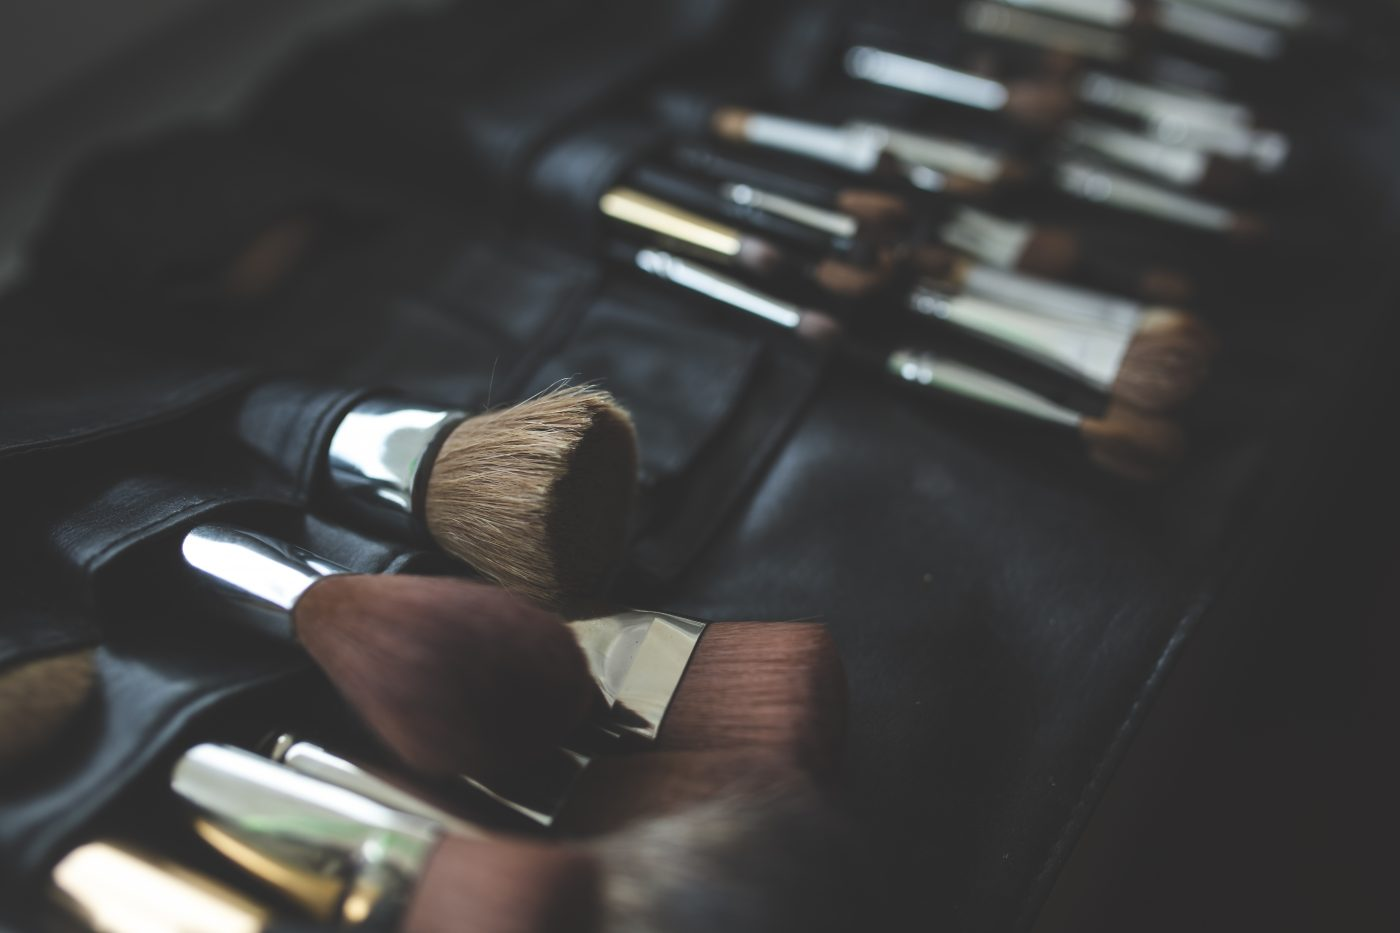 #DontTaxMyBeauty: Why the Vanity Tax is Complete BS